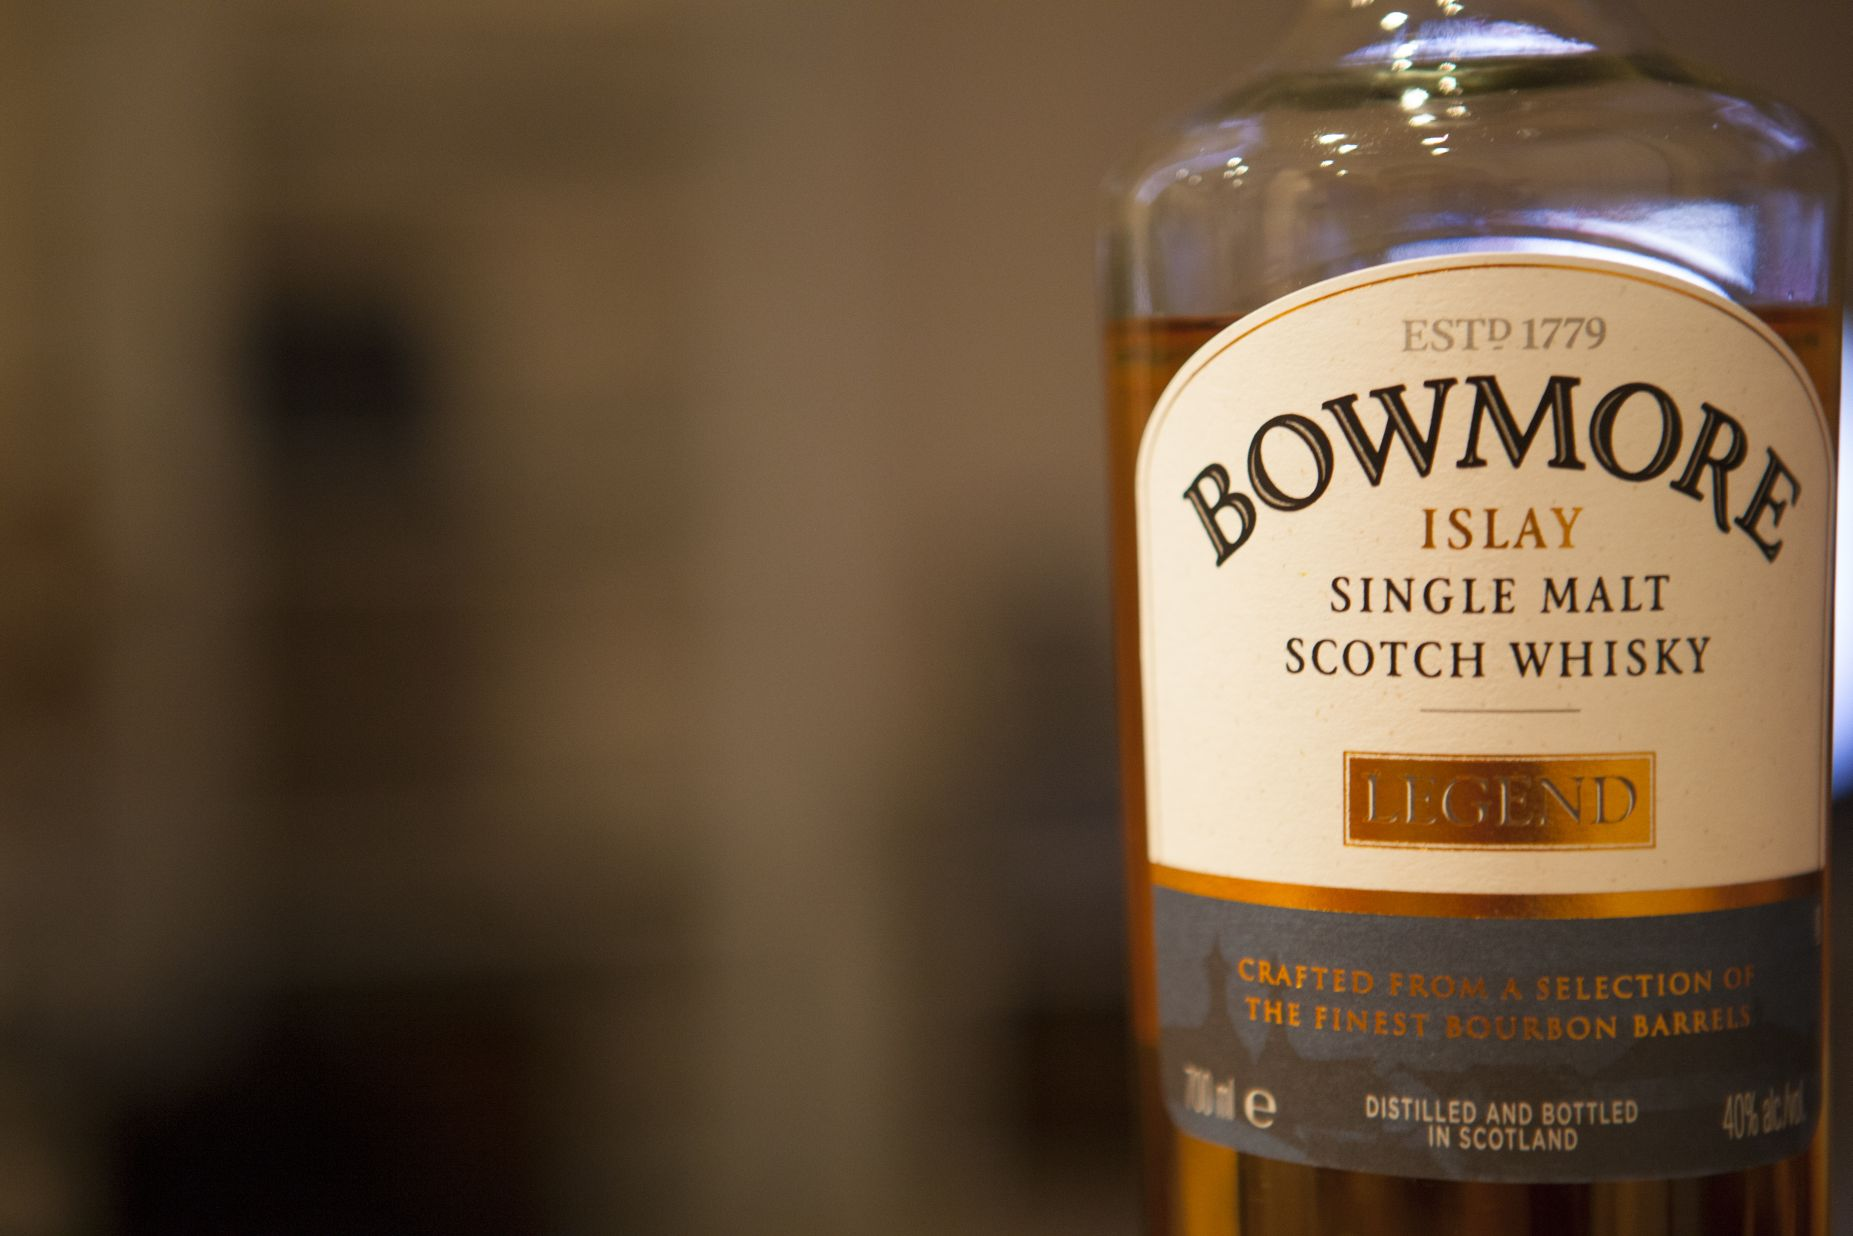 Bowmore Legend Whisky Review